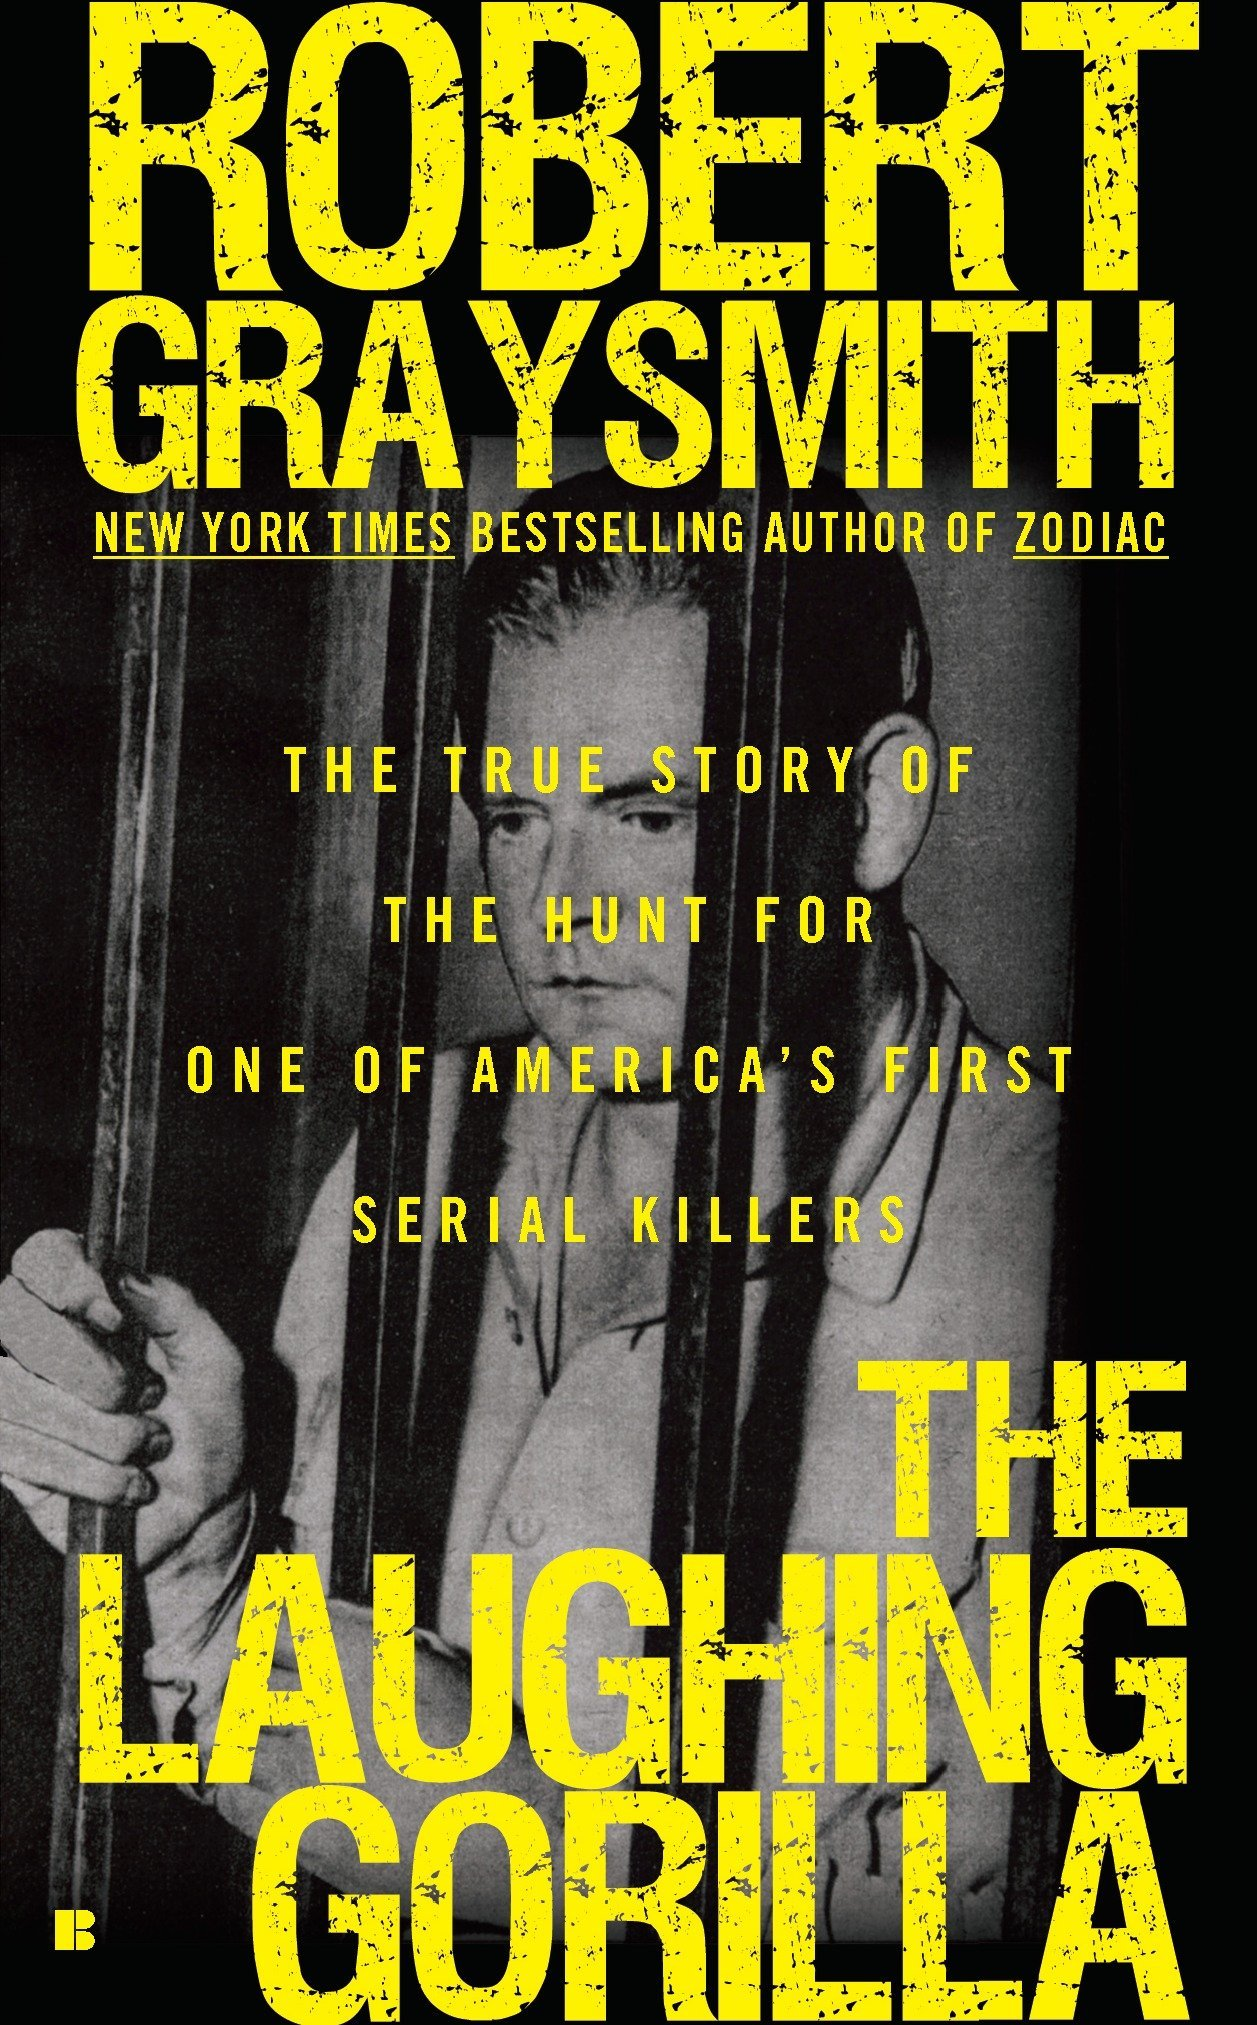 The Laughing Gorilla: The True Story of the Hunt for One of America's First Serial Killers PDF ePub ebook